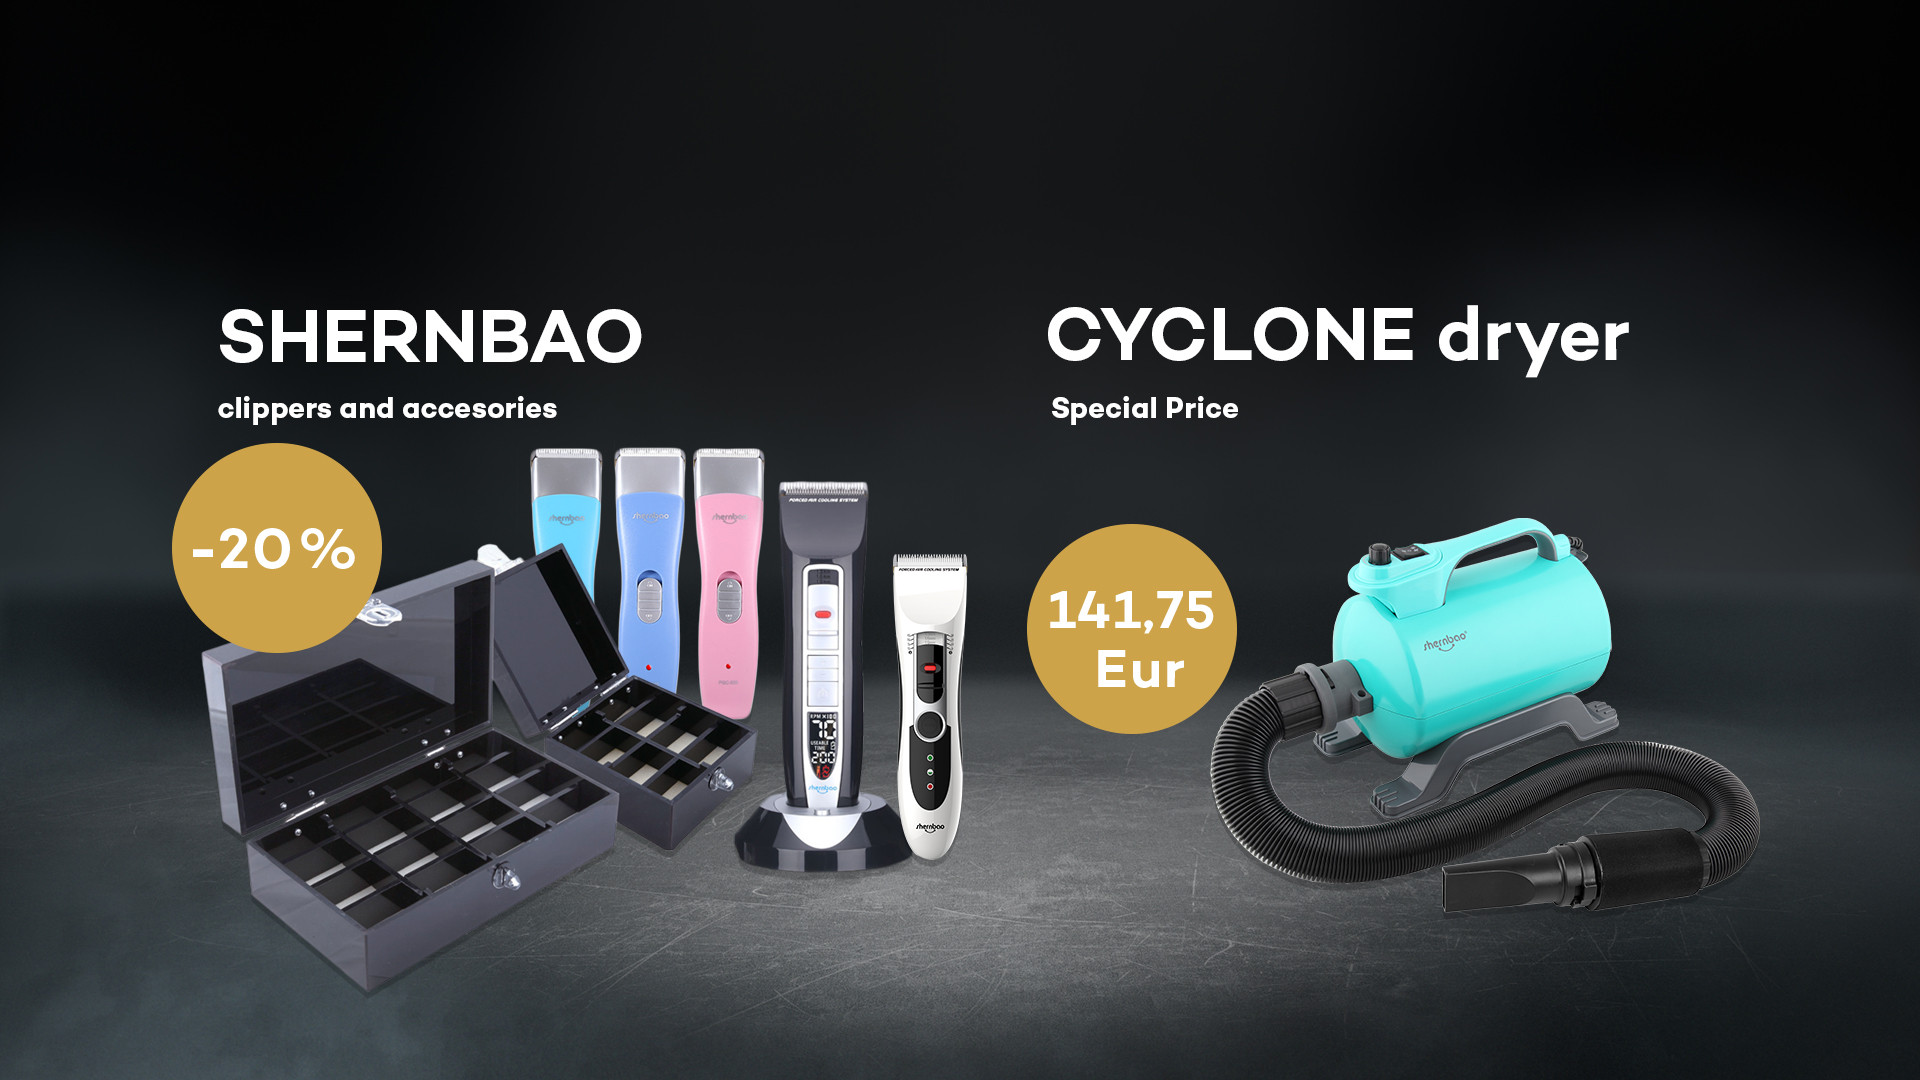 Discount for SHERNBAO clippers and accesories -20%